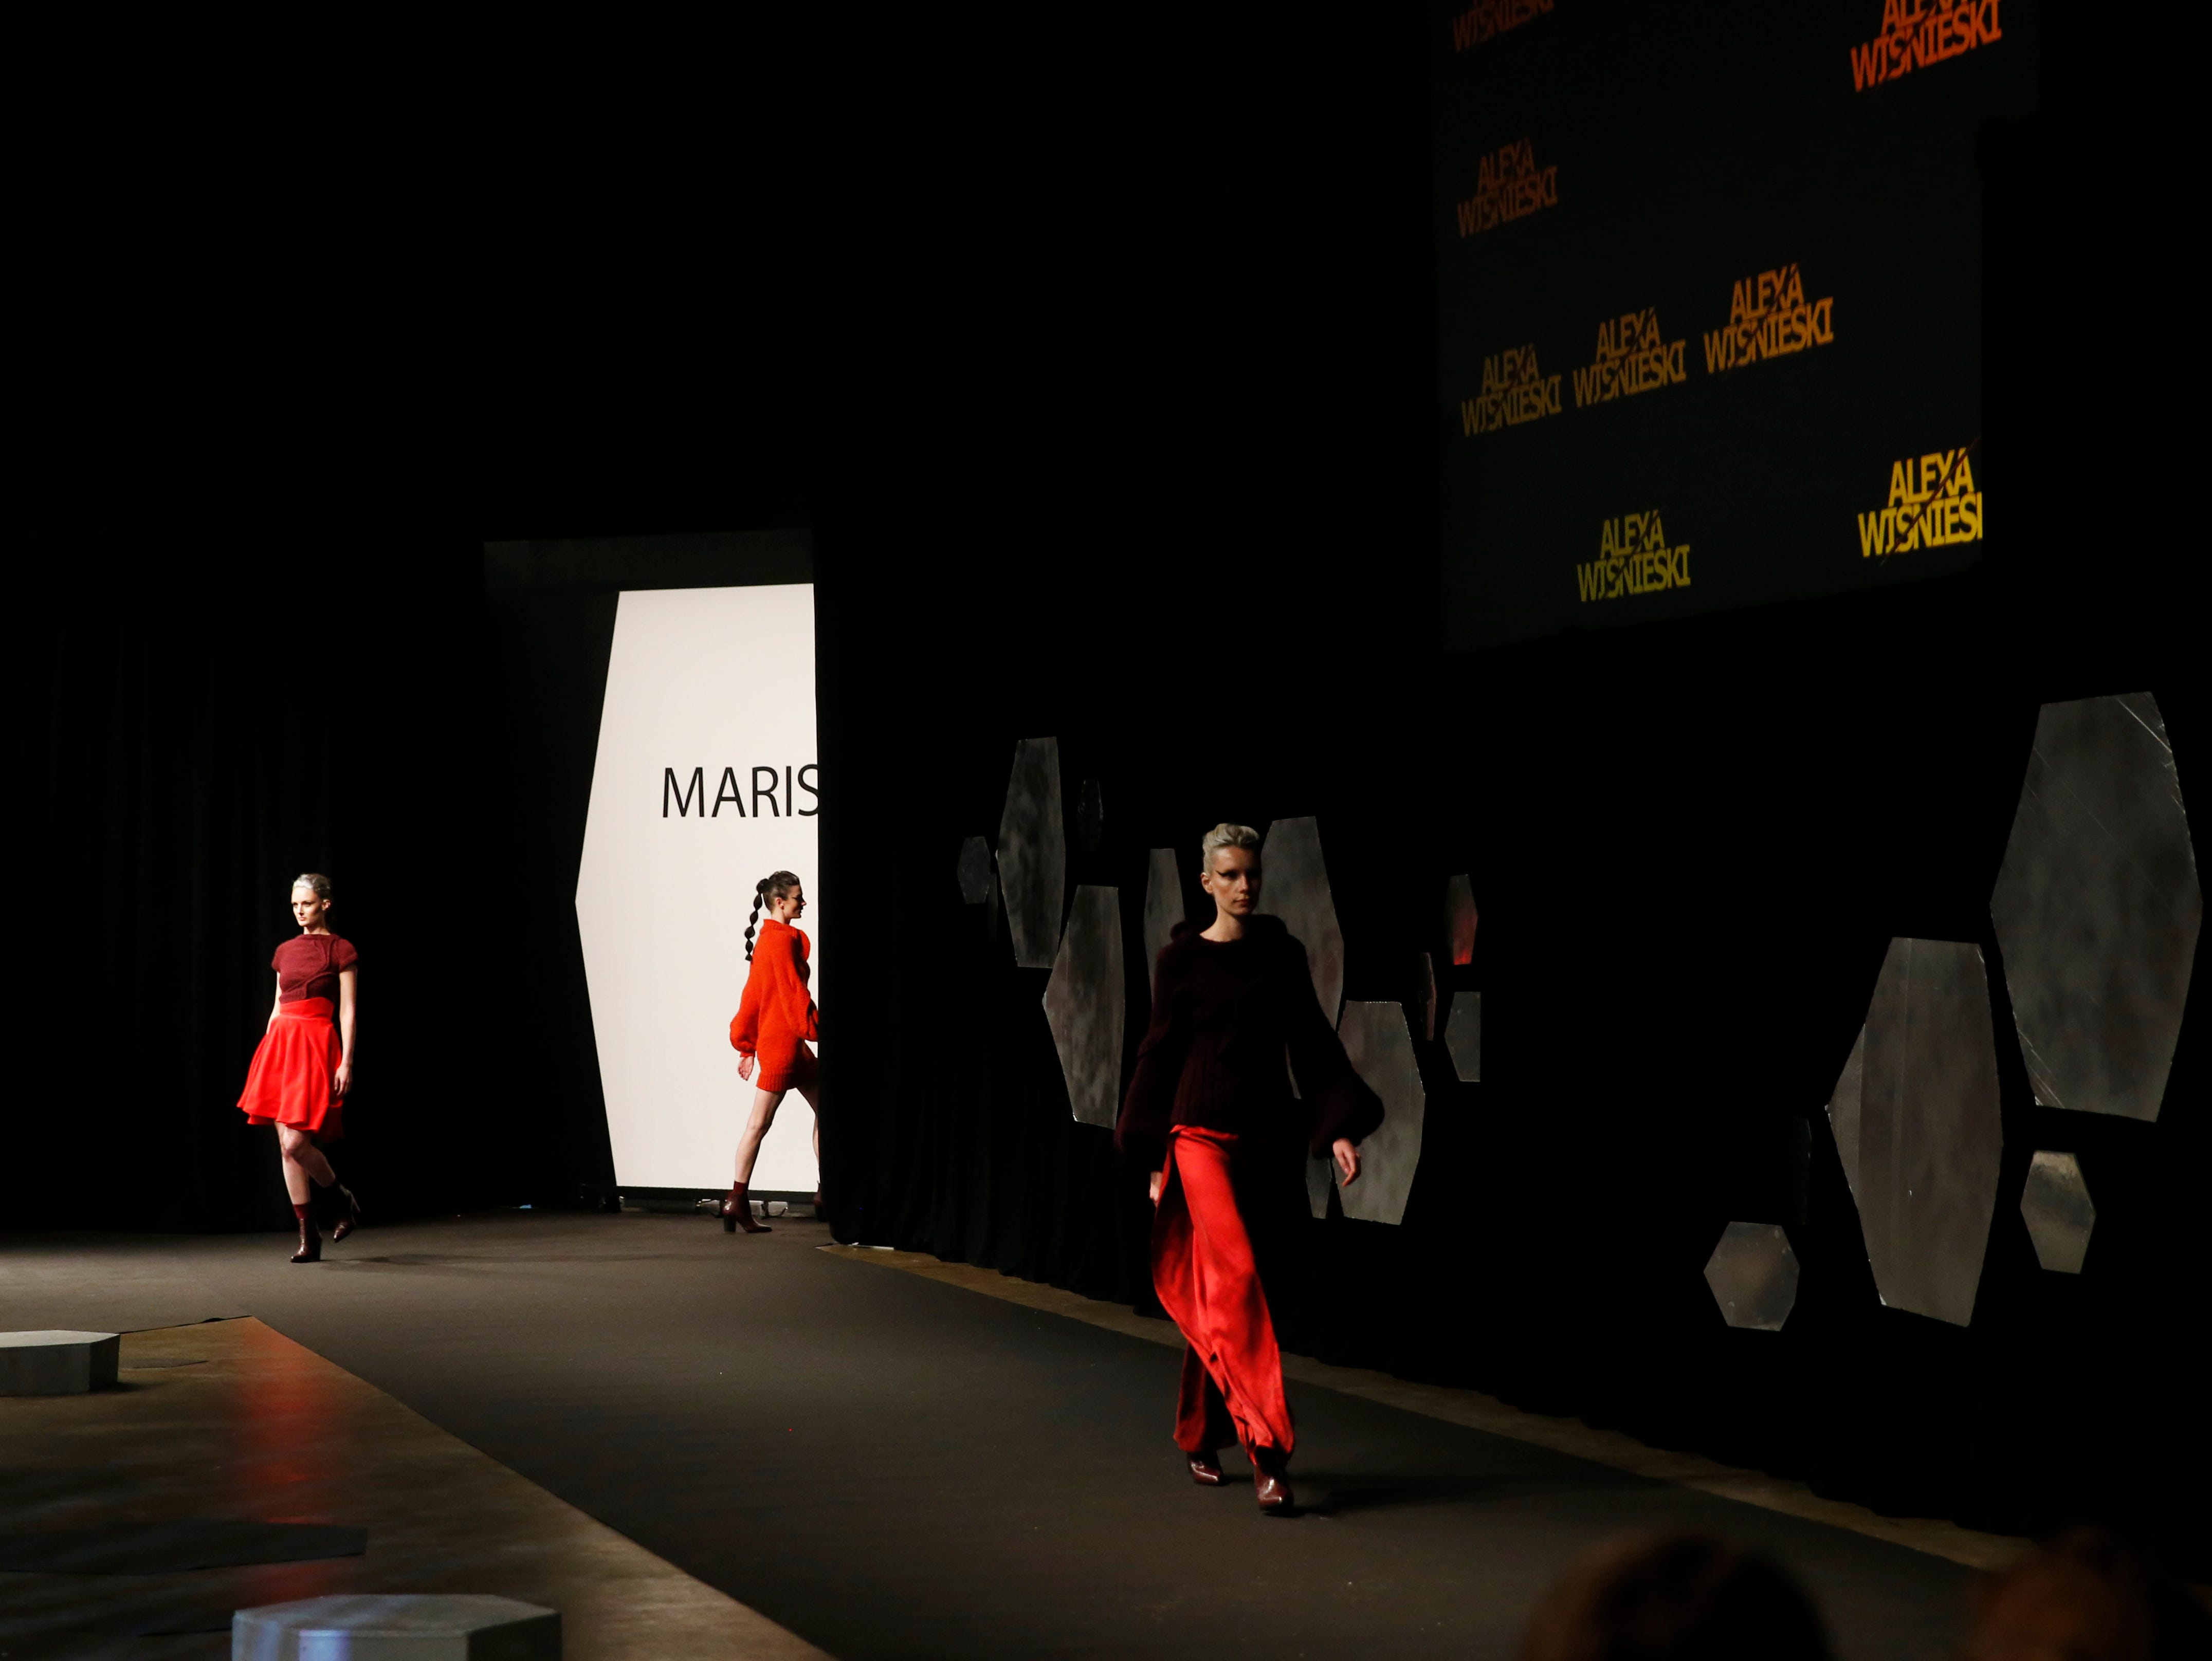 Designs from the collection of Marist College Fashion Department senior Alexa Wisnieski during the 33rd Marist College Silver Needle Runway Show on May 10, 2019.